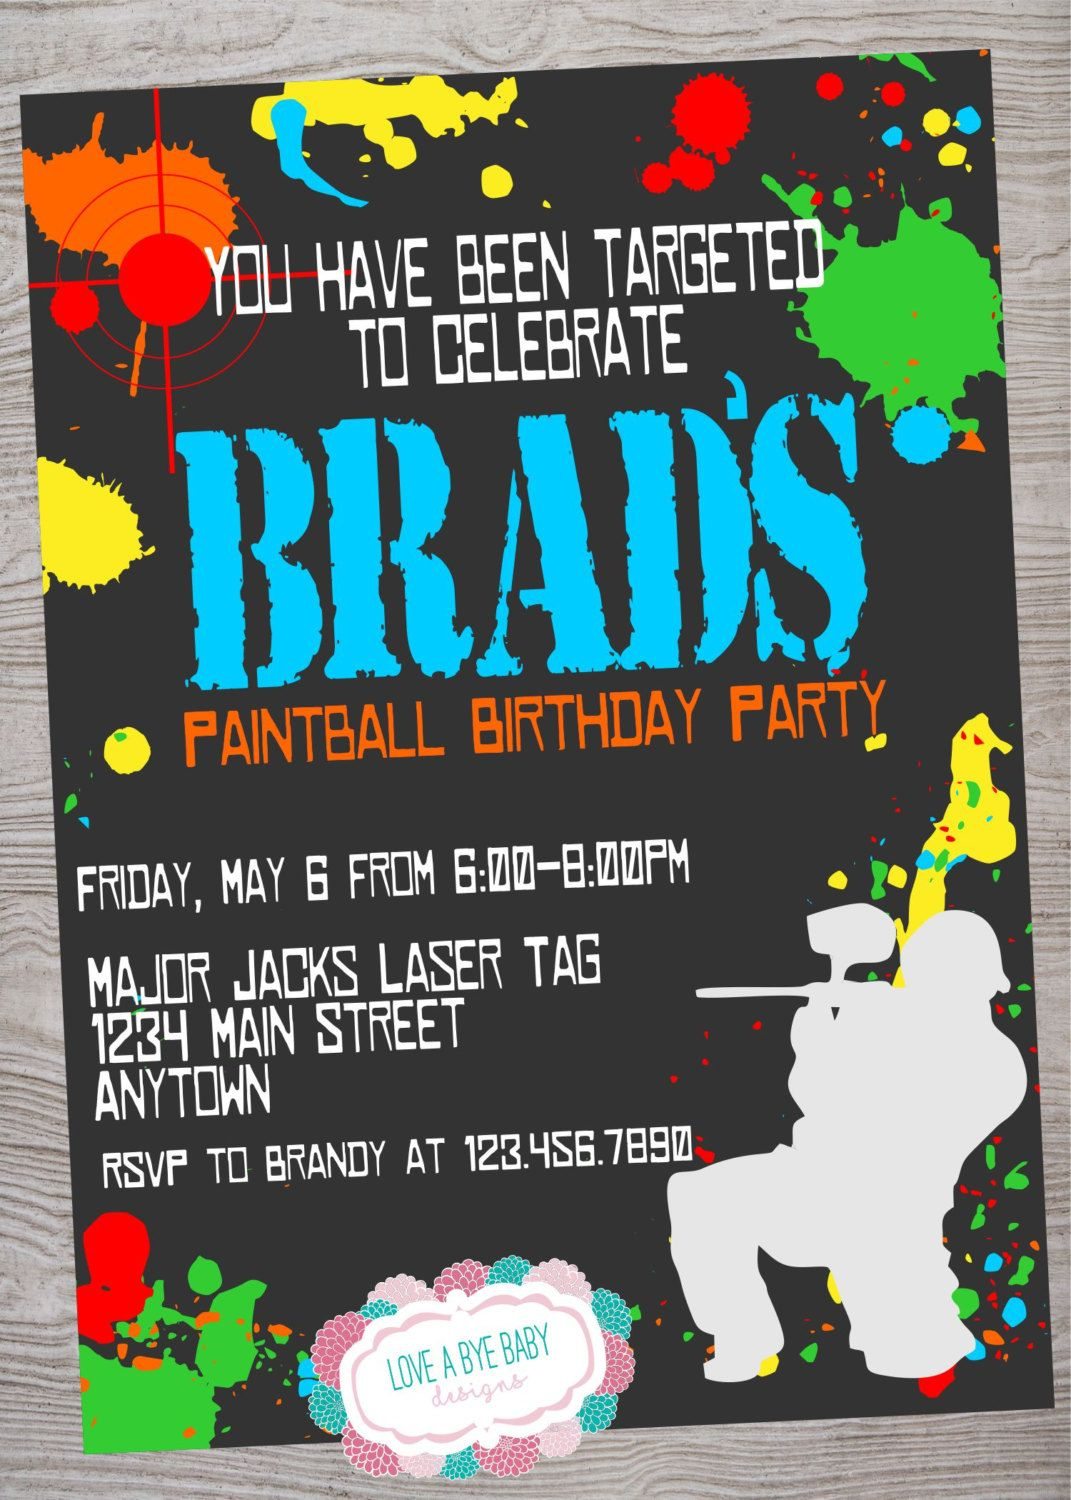 Paintball Birthday Invitation Printable Digital Download By LoveAByeBabyDesigns On Etsy